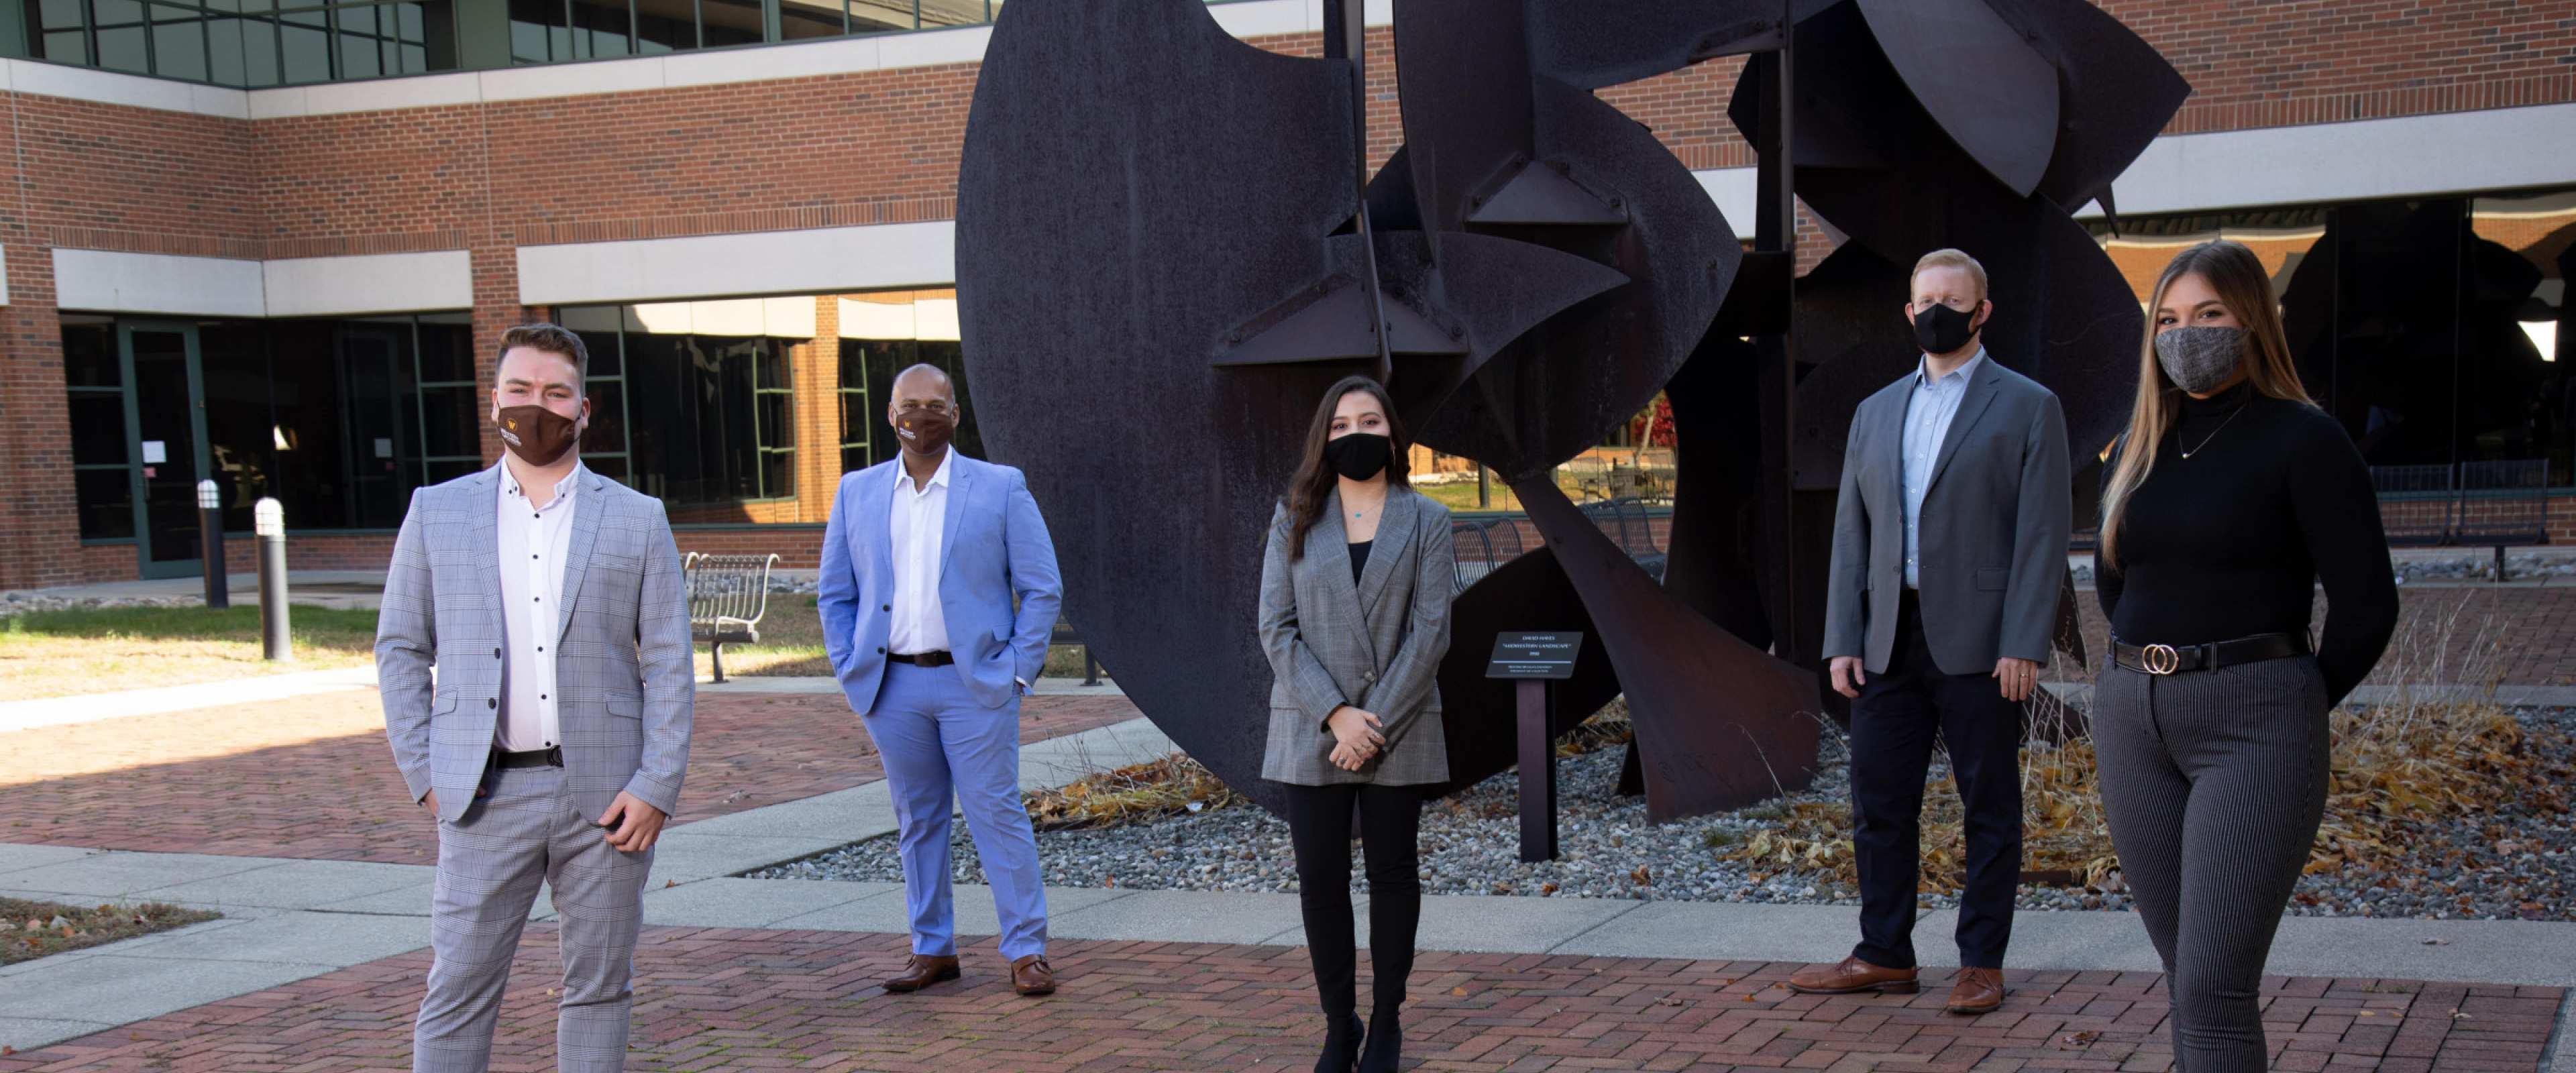 Three students, and two faculty members, masked, stand in the WMU Haworth courtyard,